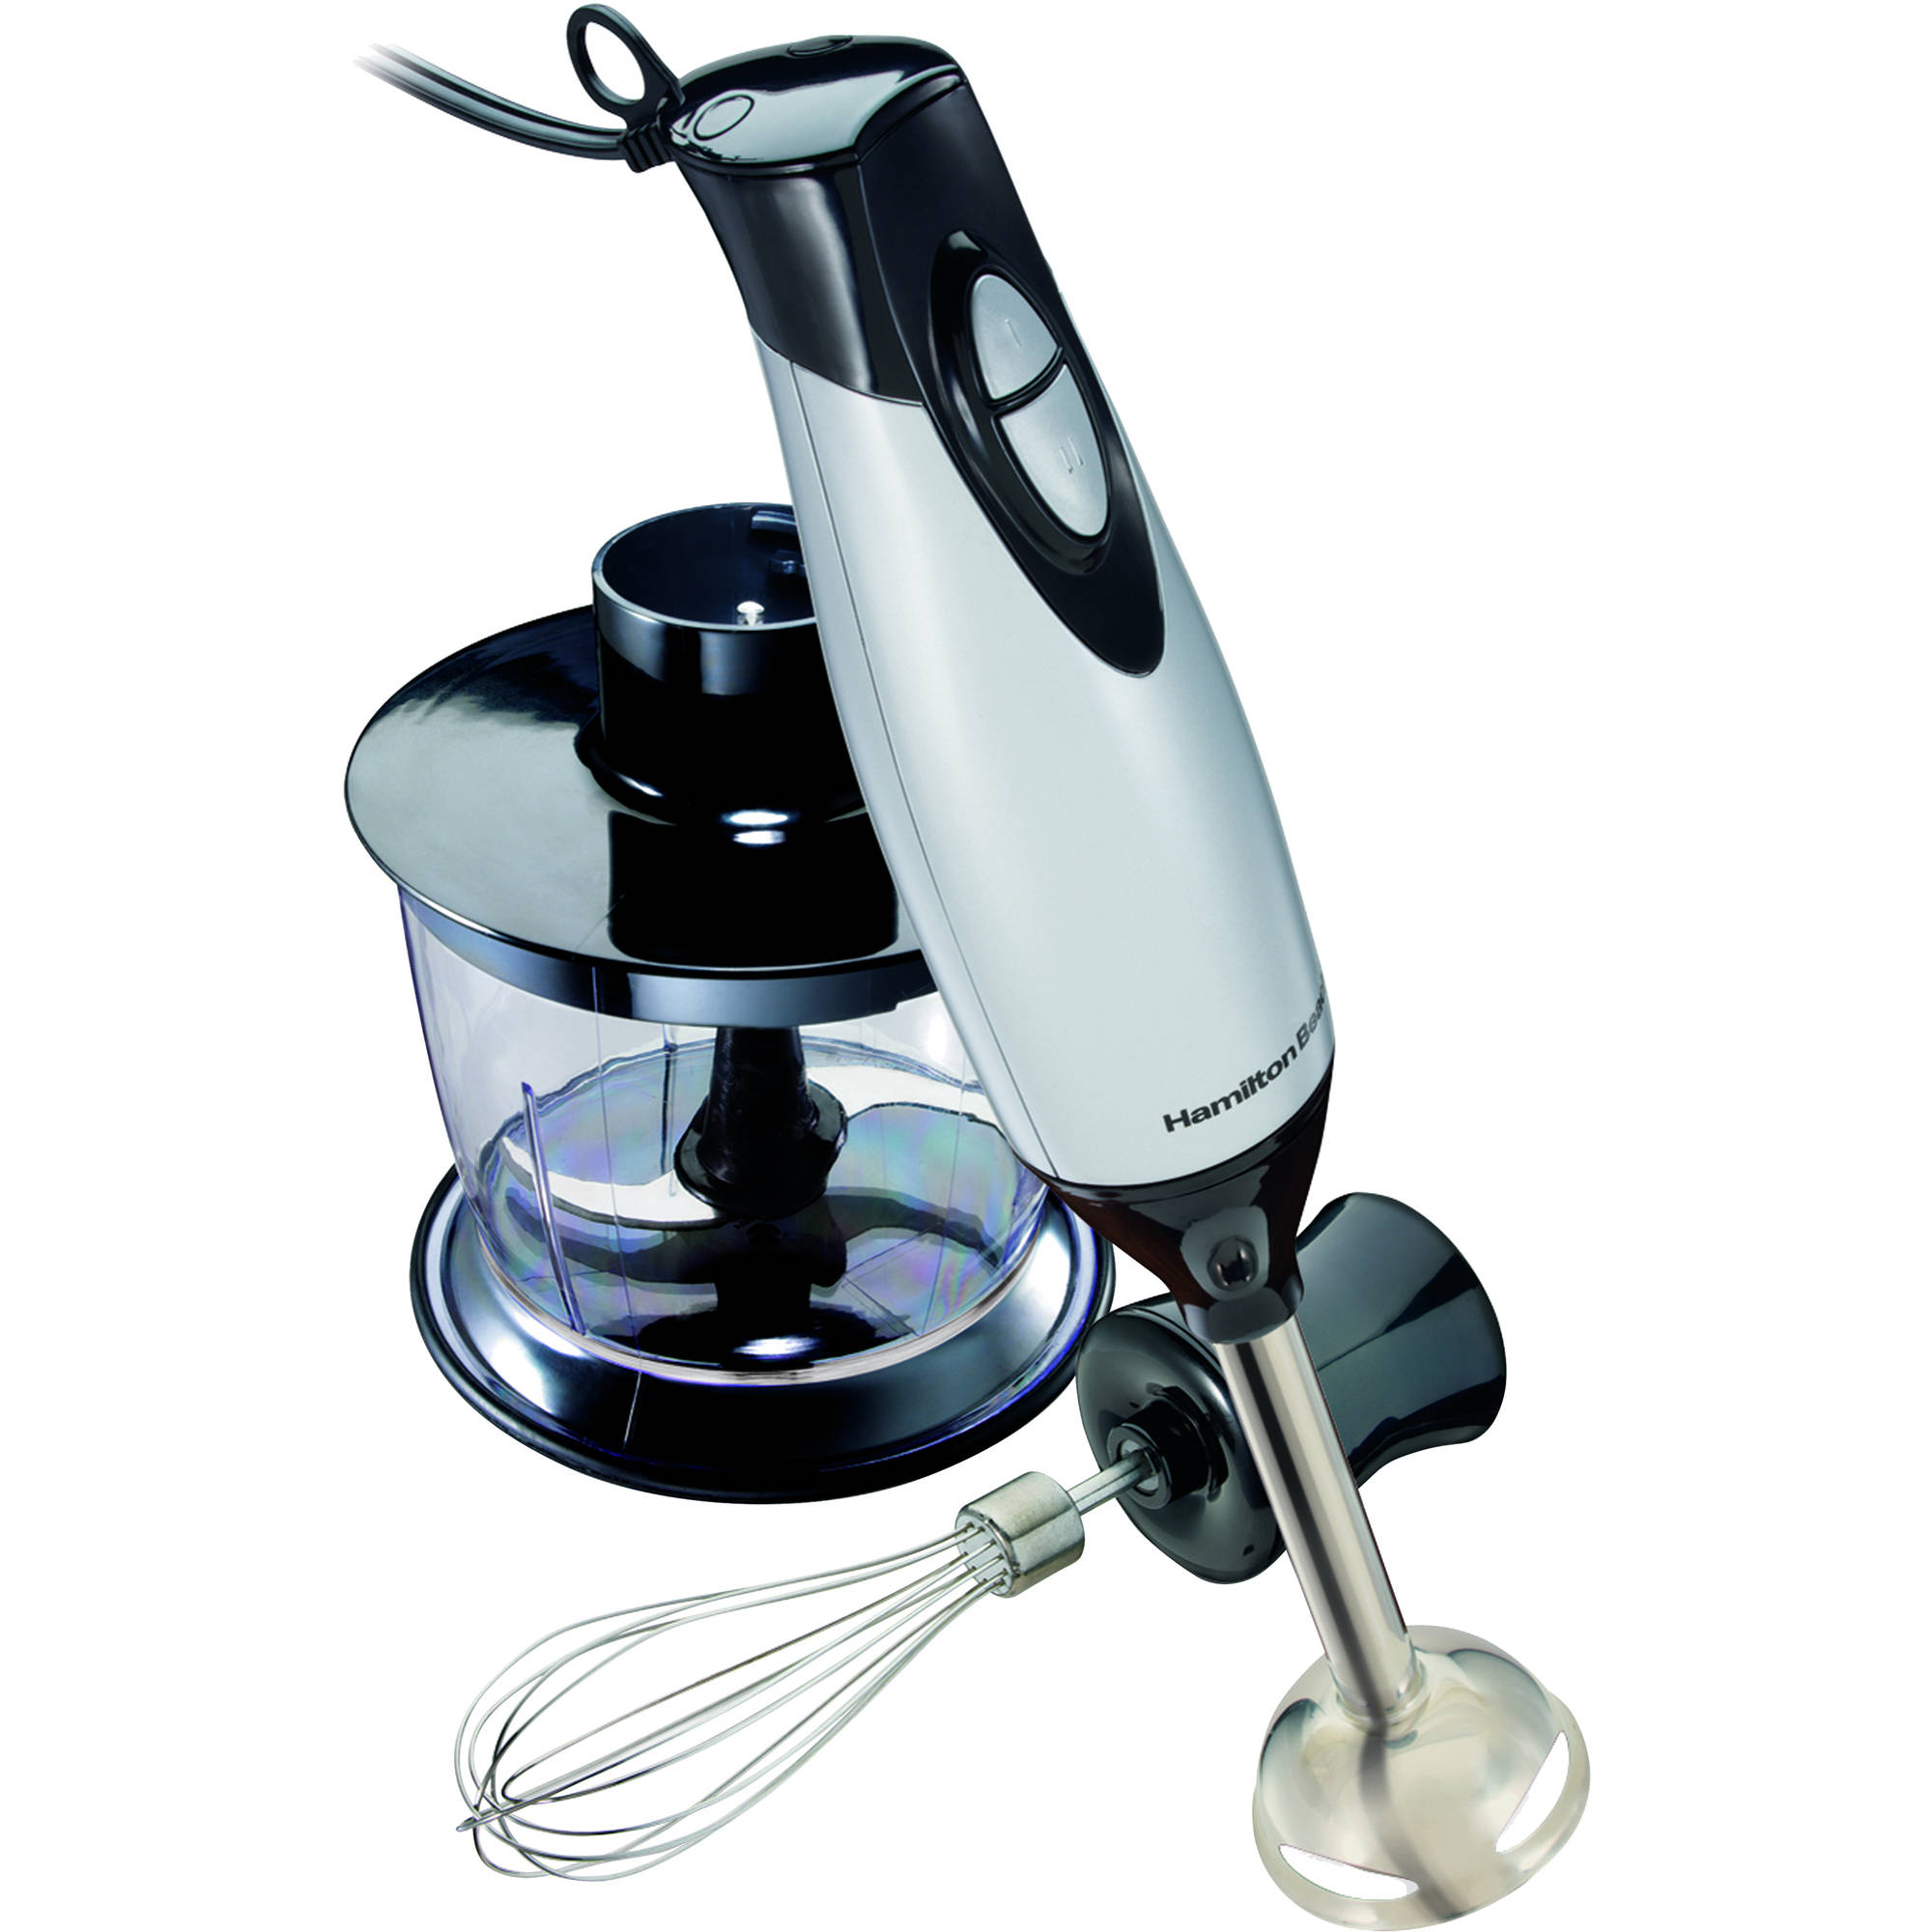 Hamilton Beach Hand Blender With Attachments & Bowl | Model# 59765